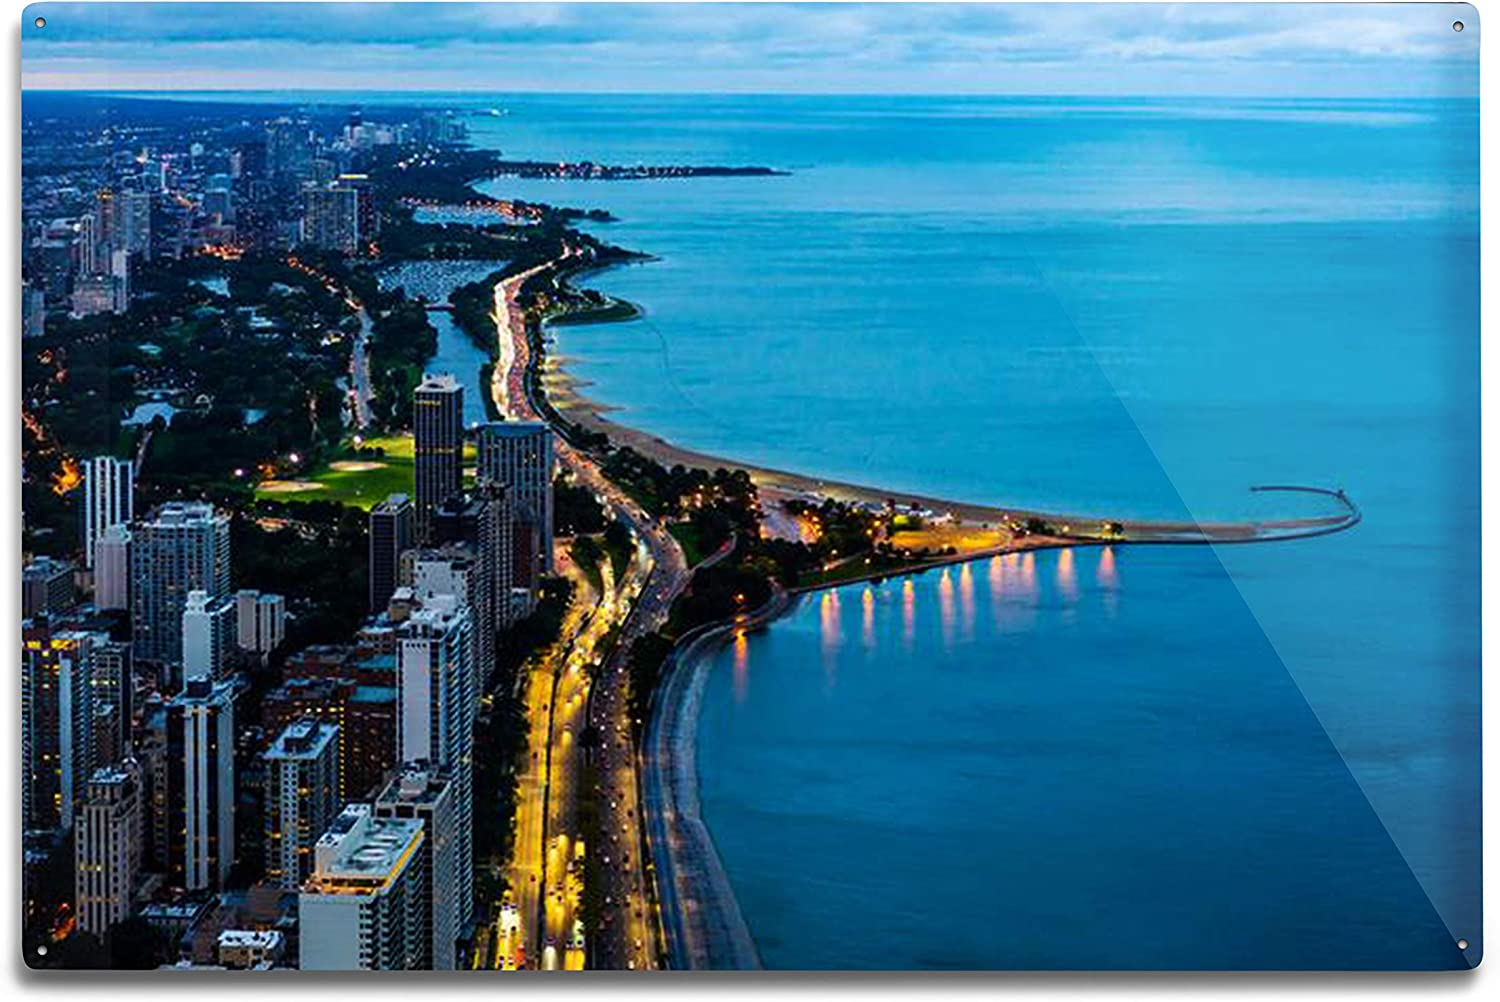 Lantern Press Chicago, Illinois - Aerial View of The City Skyline & Lake Michigan at Night 9024169 (6x9 Aluminum Wall Sign, Wall Decor Ready to Hang)